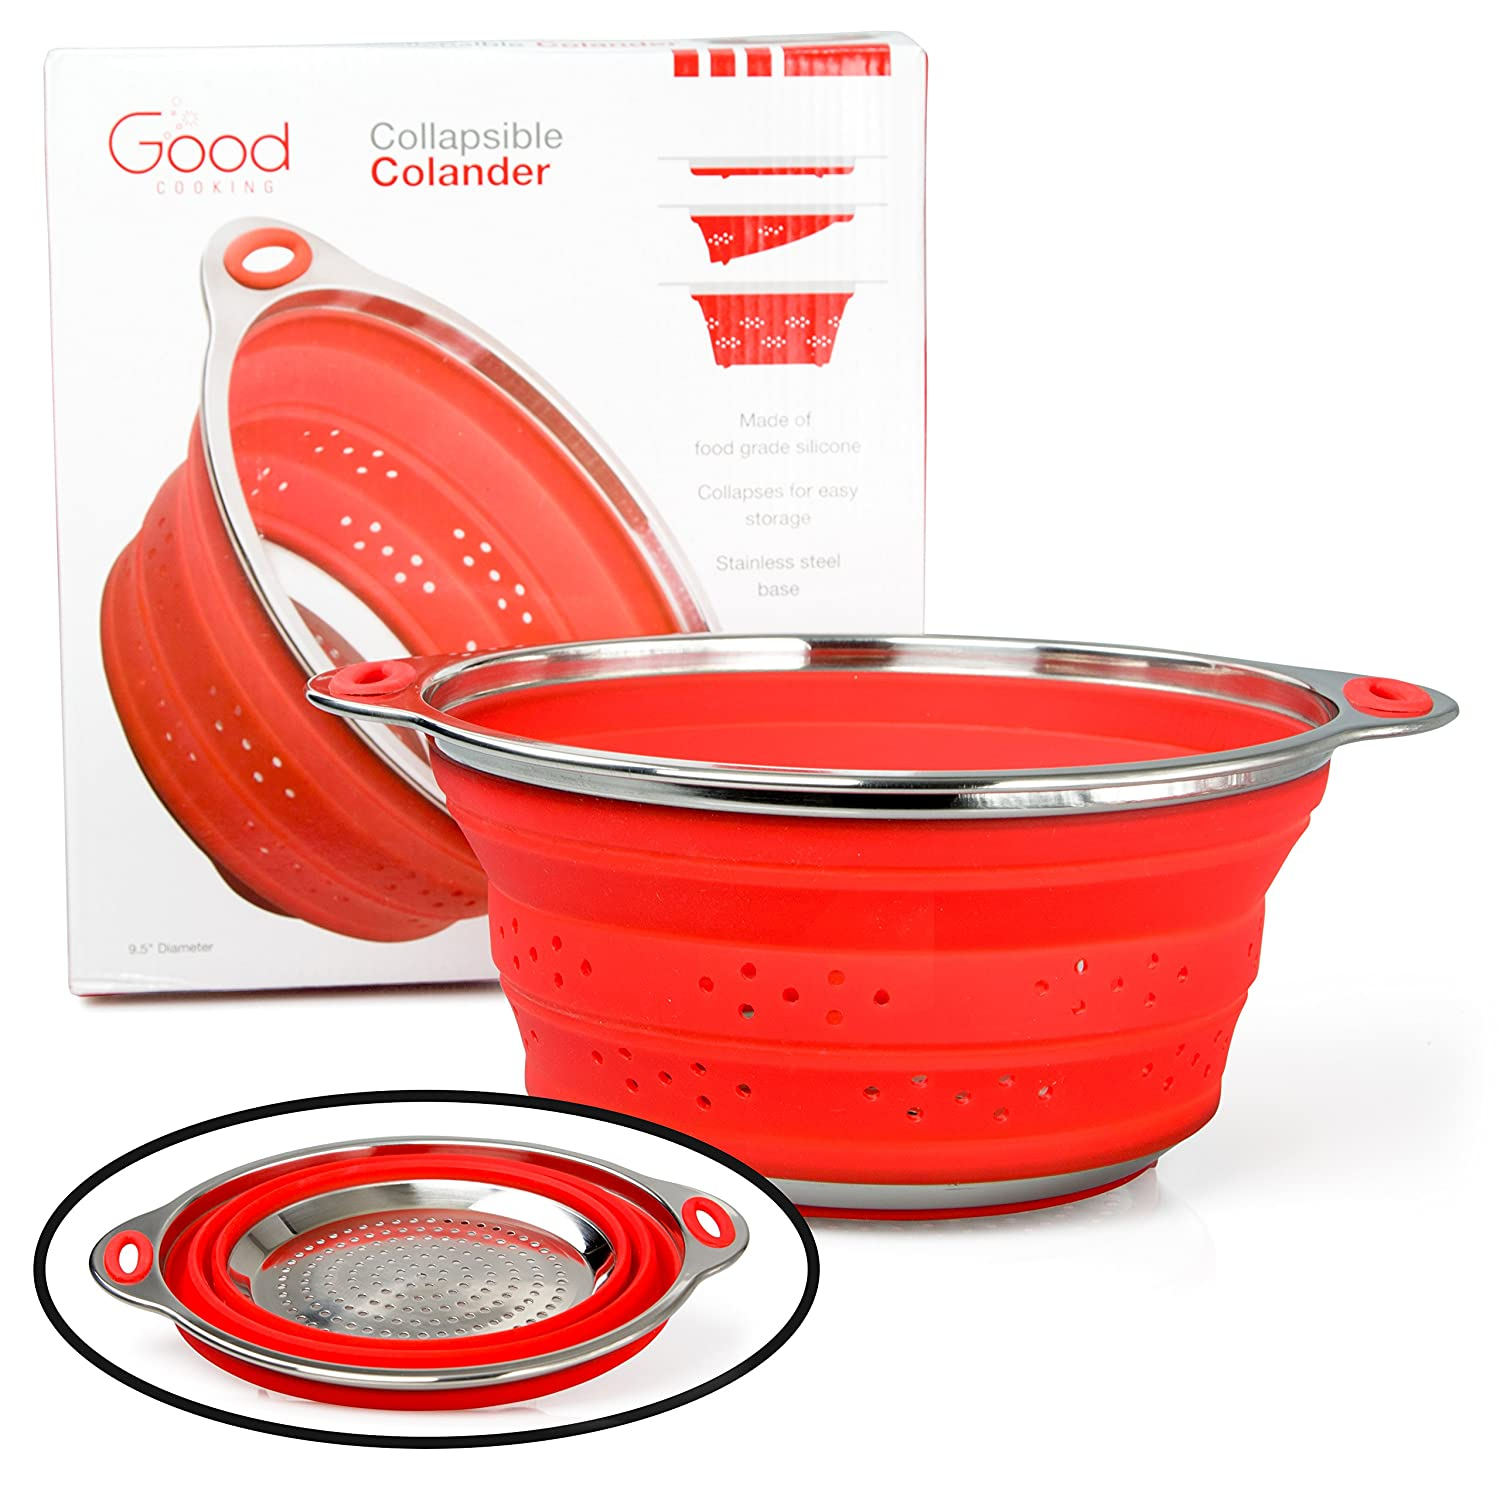 Collapsible Colander with Stainless Steel Base (Extra Large 9.5